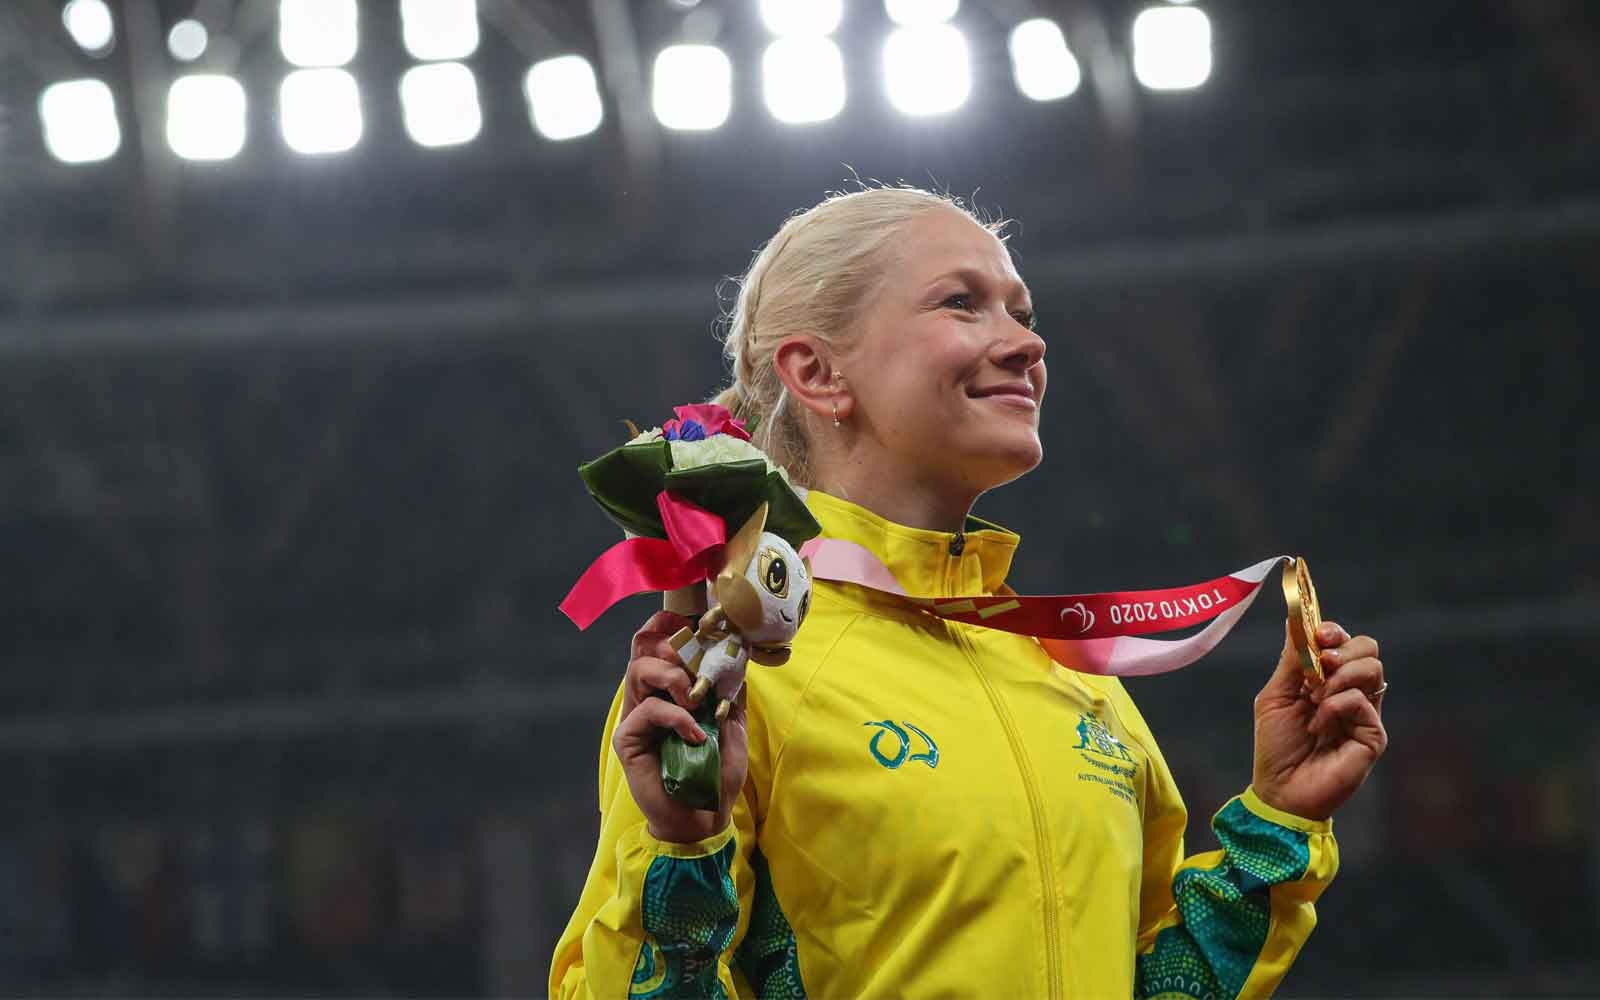 Day 9 Wrap: Vanessa Low Jumps To Victory, This Time For Australia